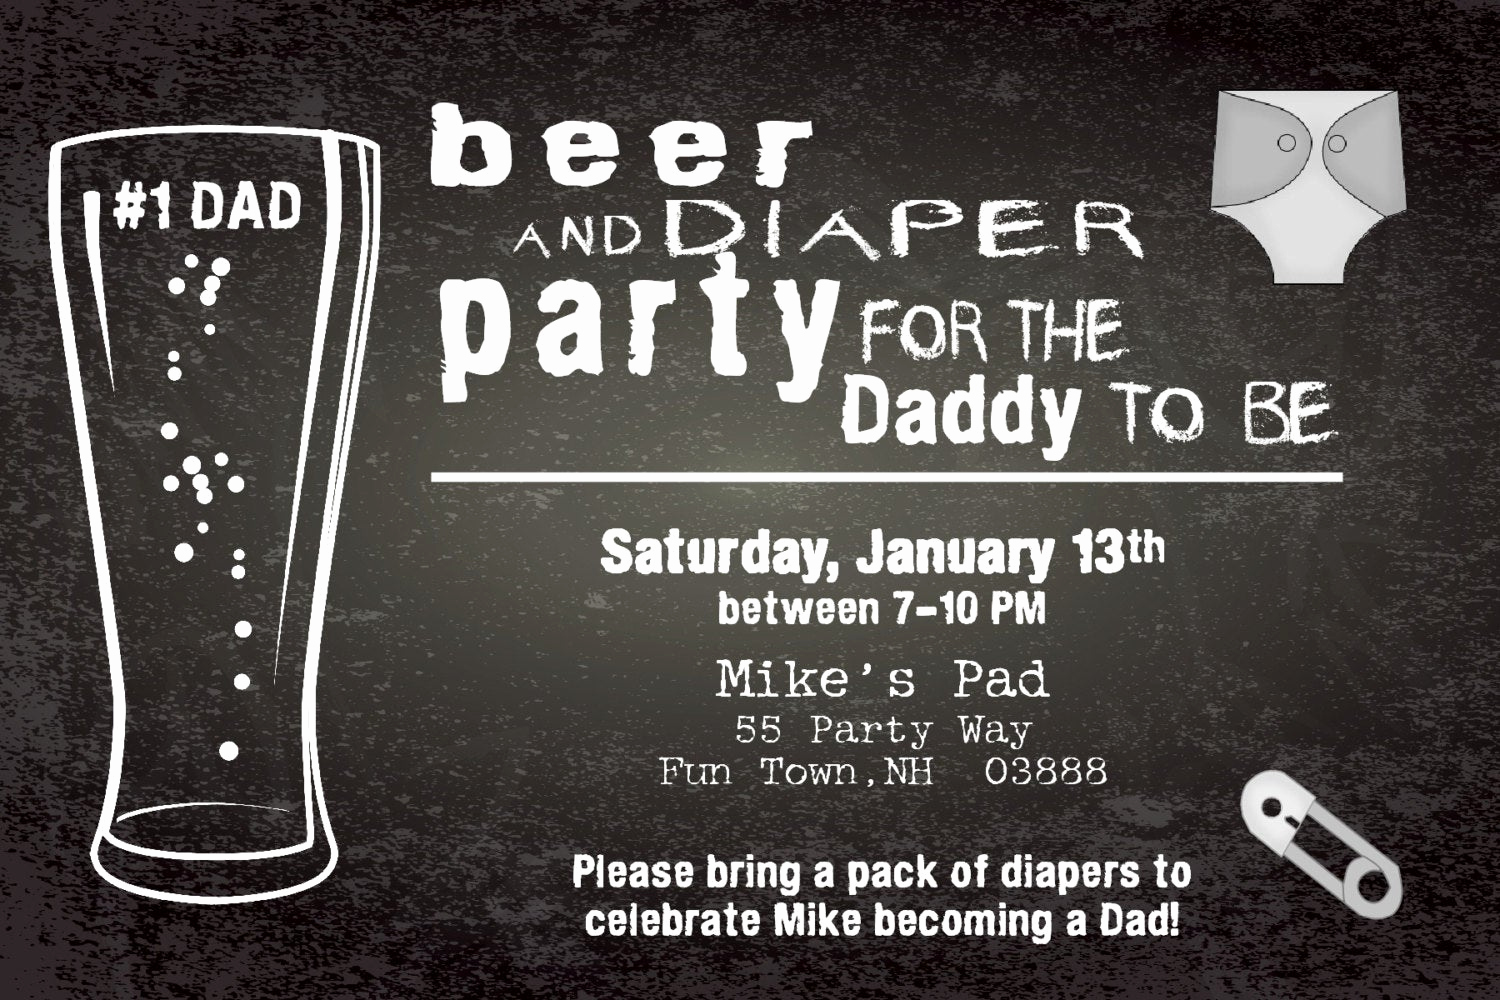 Diaper Party Invitation Template Awesome Beer and Diaper Shower Invitation Boy Man Shower Man Diaper